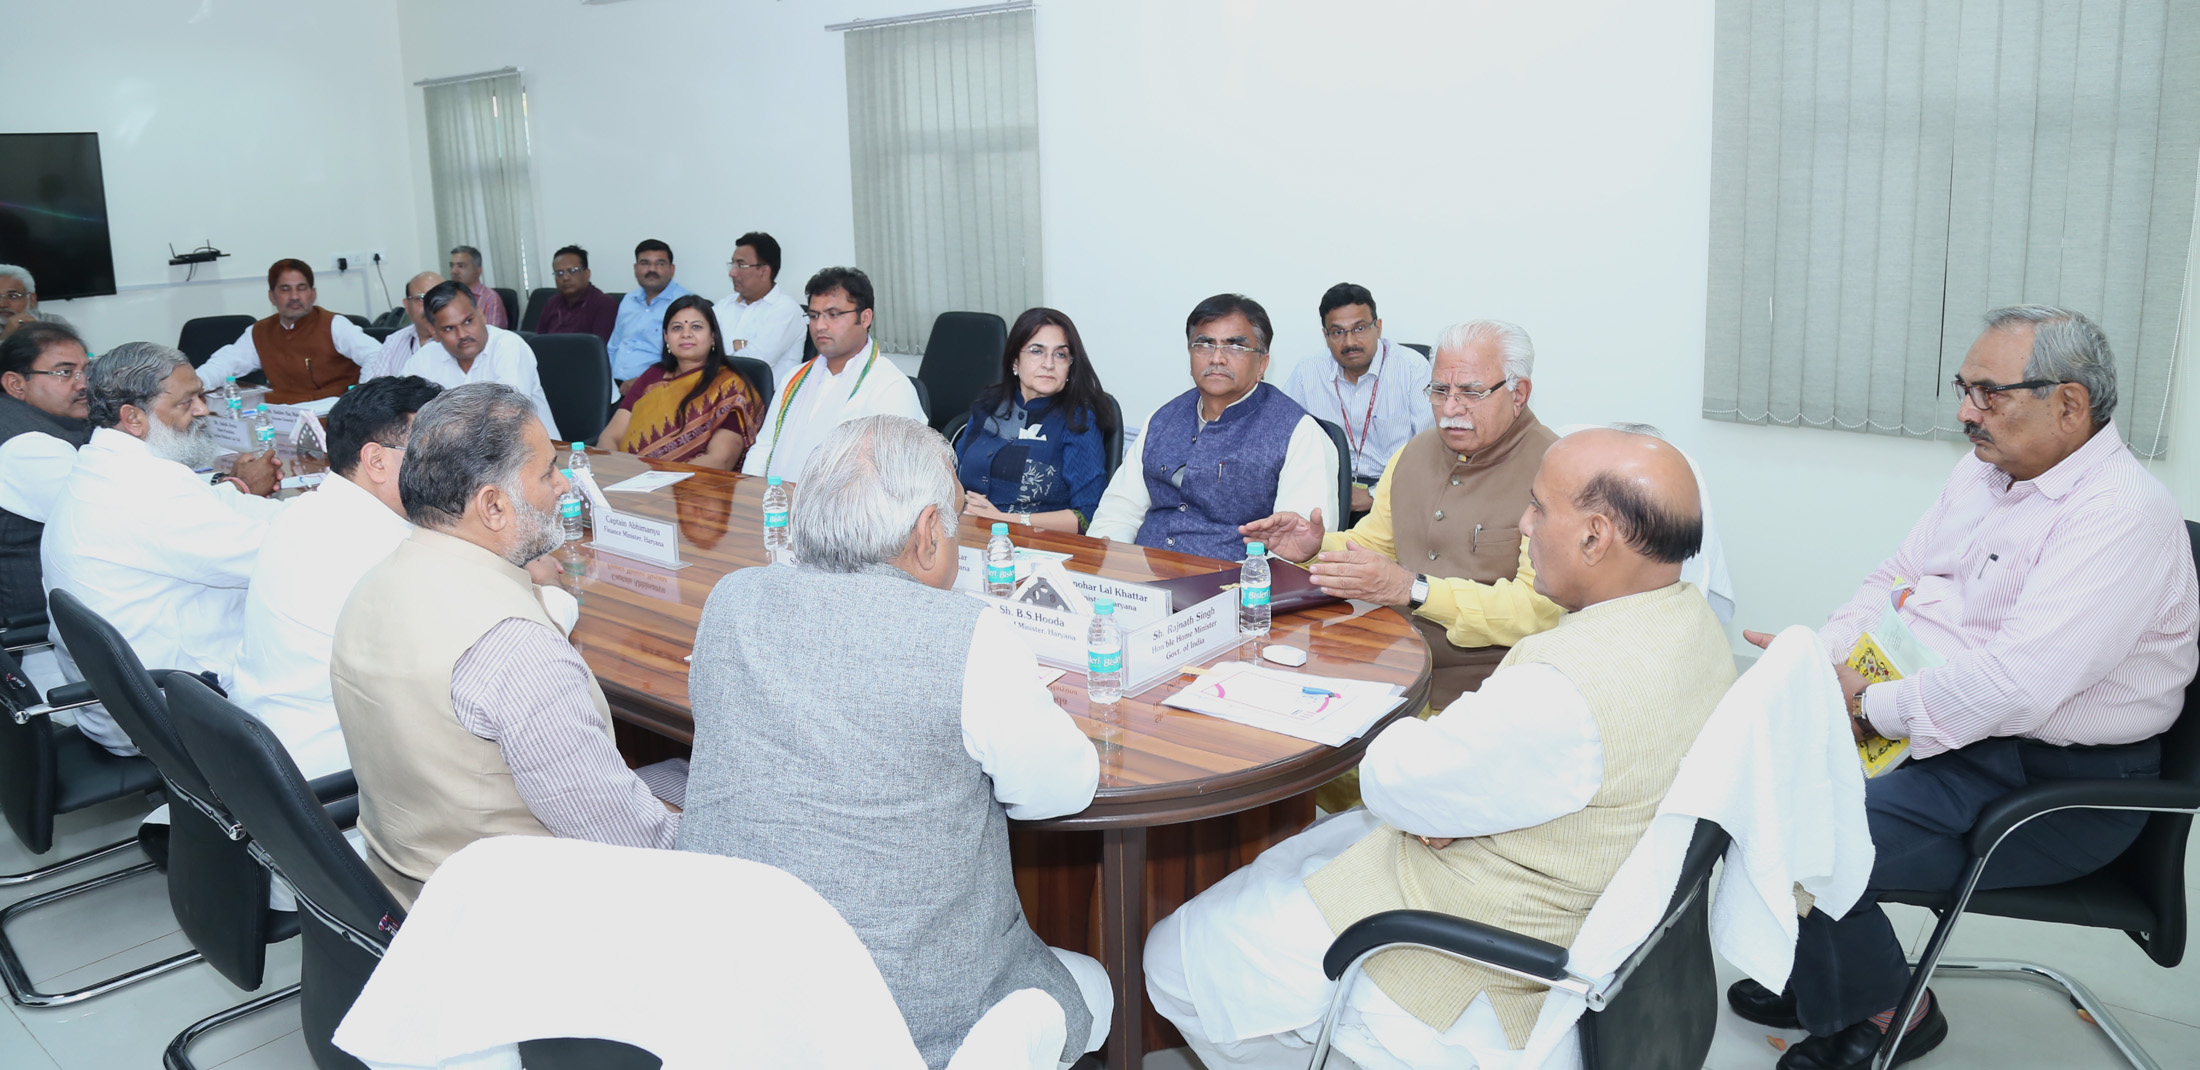 The Union Home Minister, Shri Rajnath Singh chairing an All-Party meeting on Satluj-Yamuna Link Canal issue, in New Delhi on March 24, 2017.  The Union Home Secretary, Shri Rajiv Mehrishi is also seen.